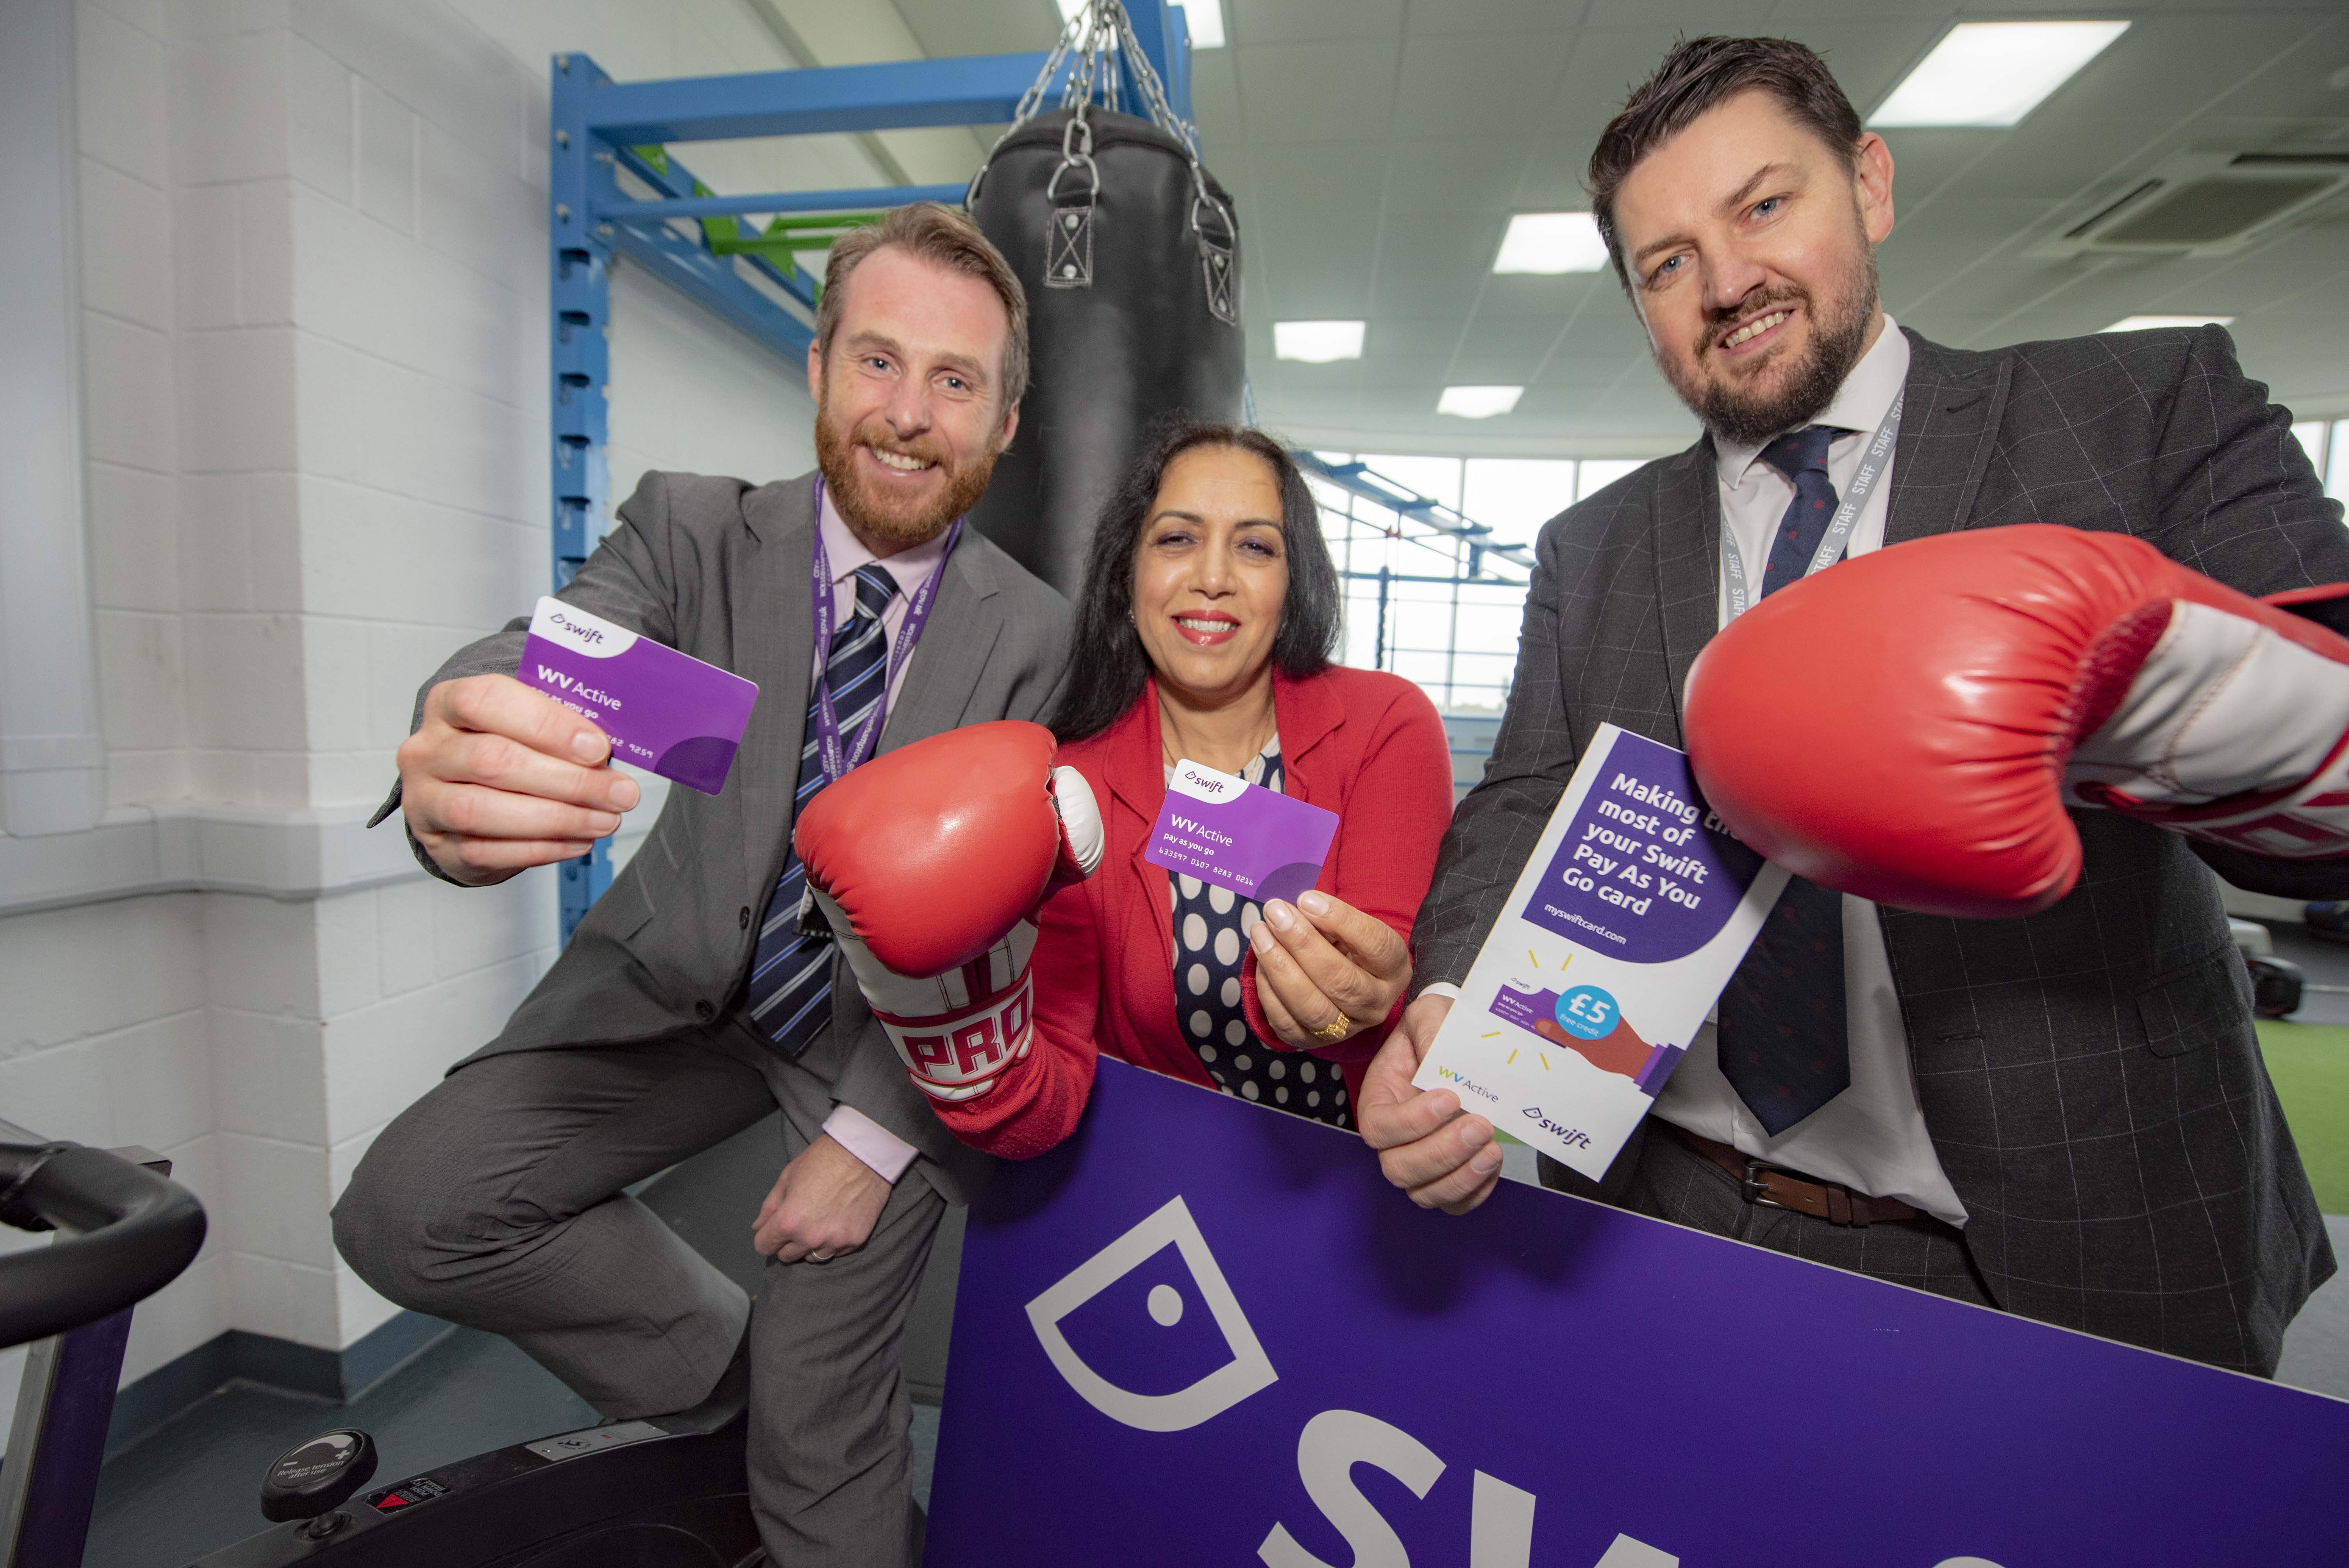 You can now use your Swift travel card to go to the gym in Wolverhampton